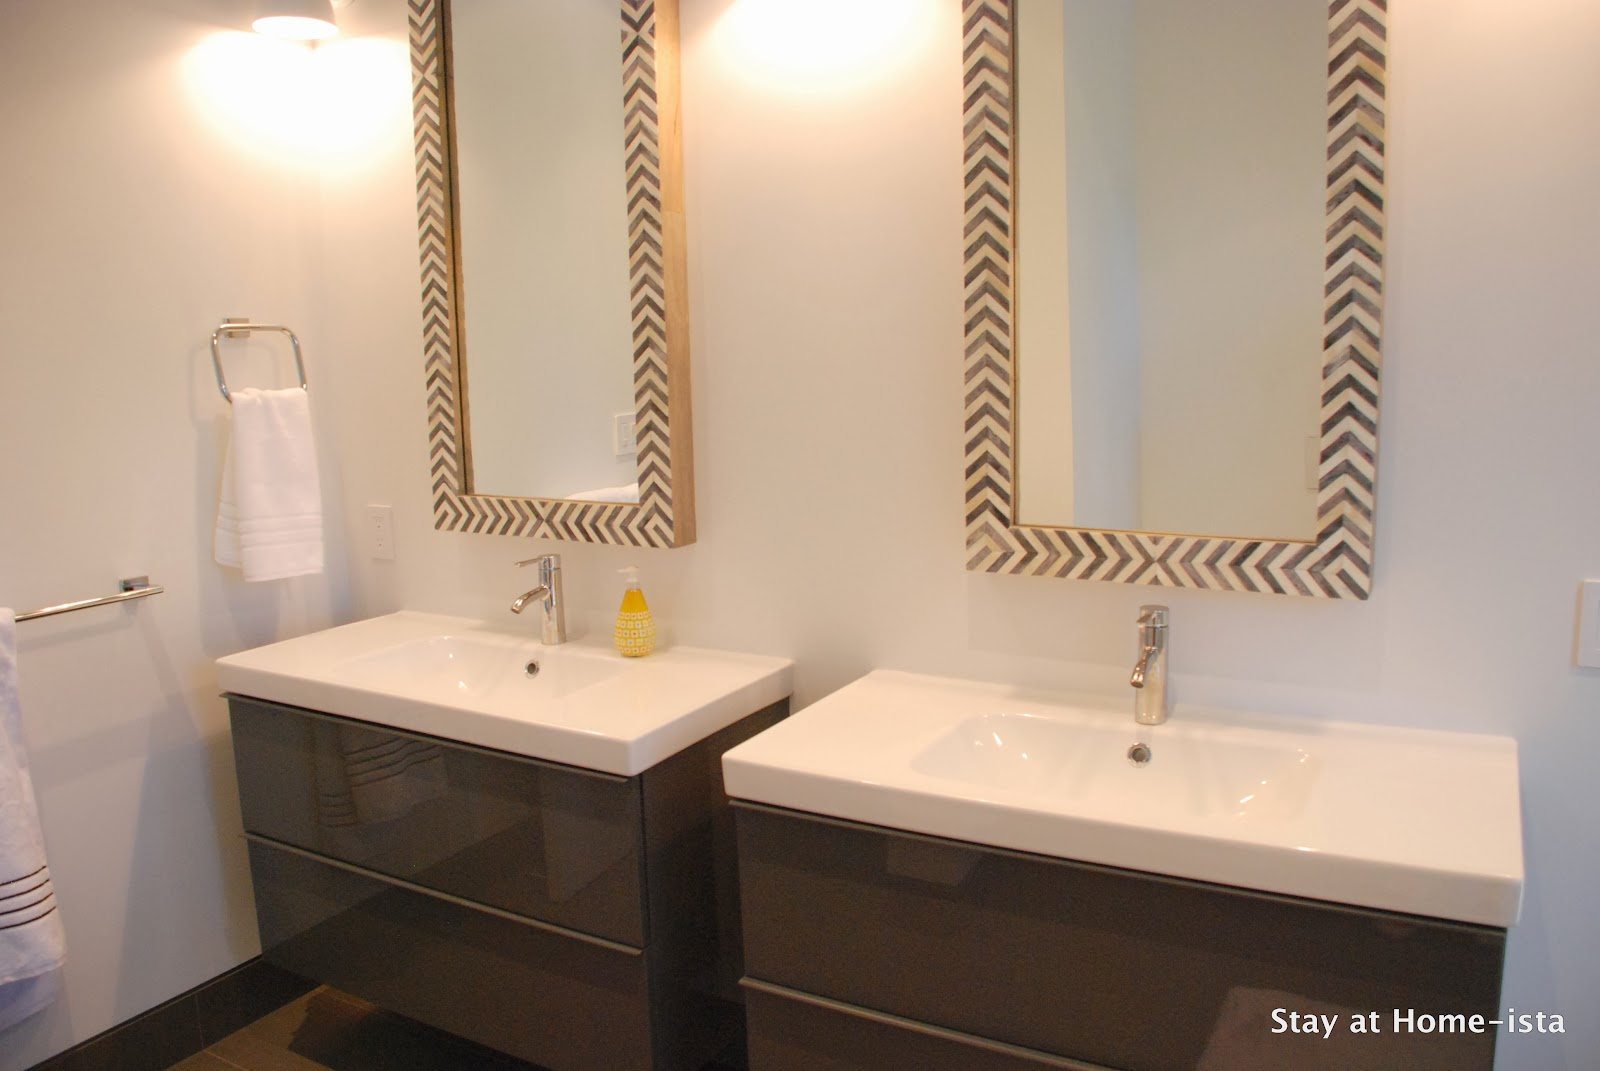 Amazing Herringbone vanity mirrors over Ikea vanities